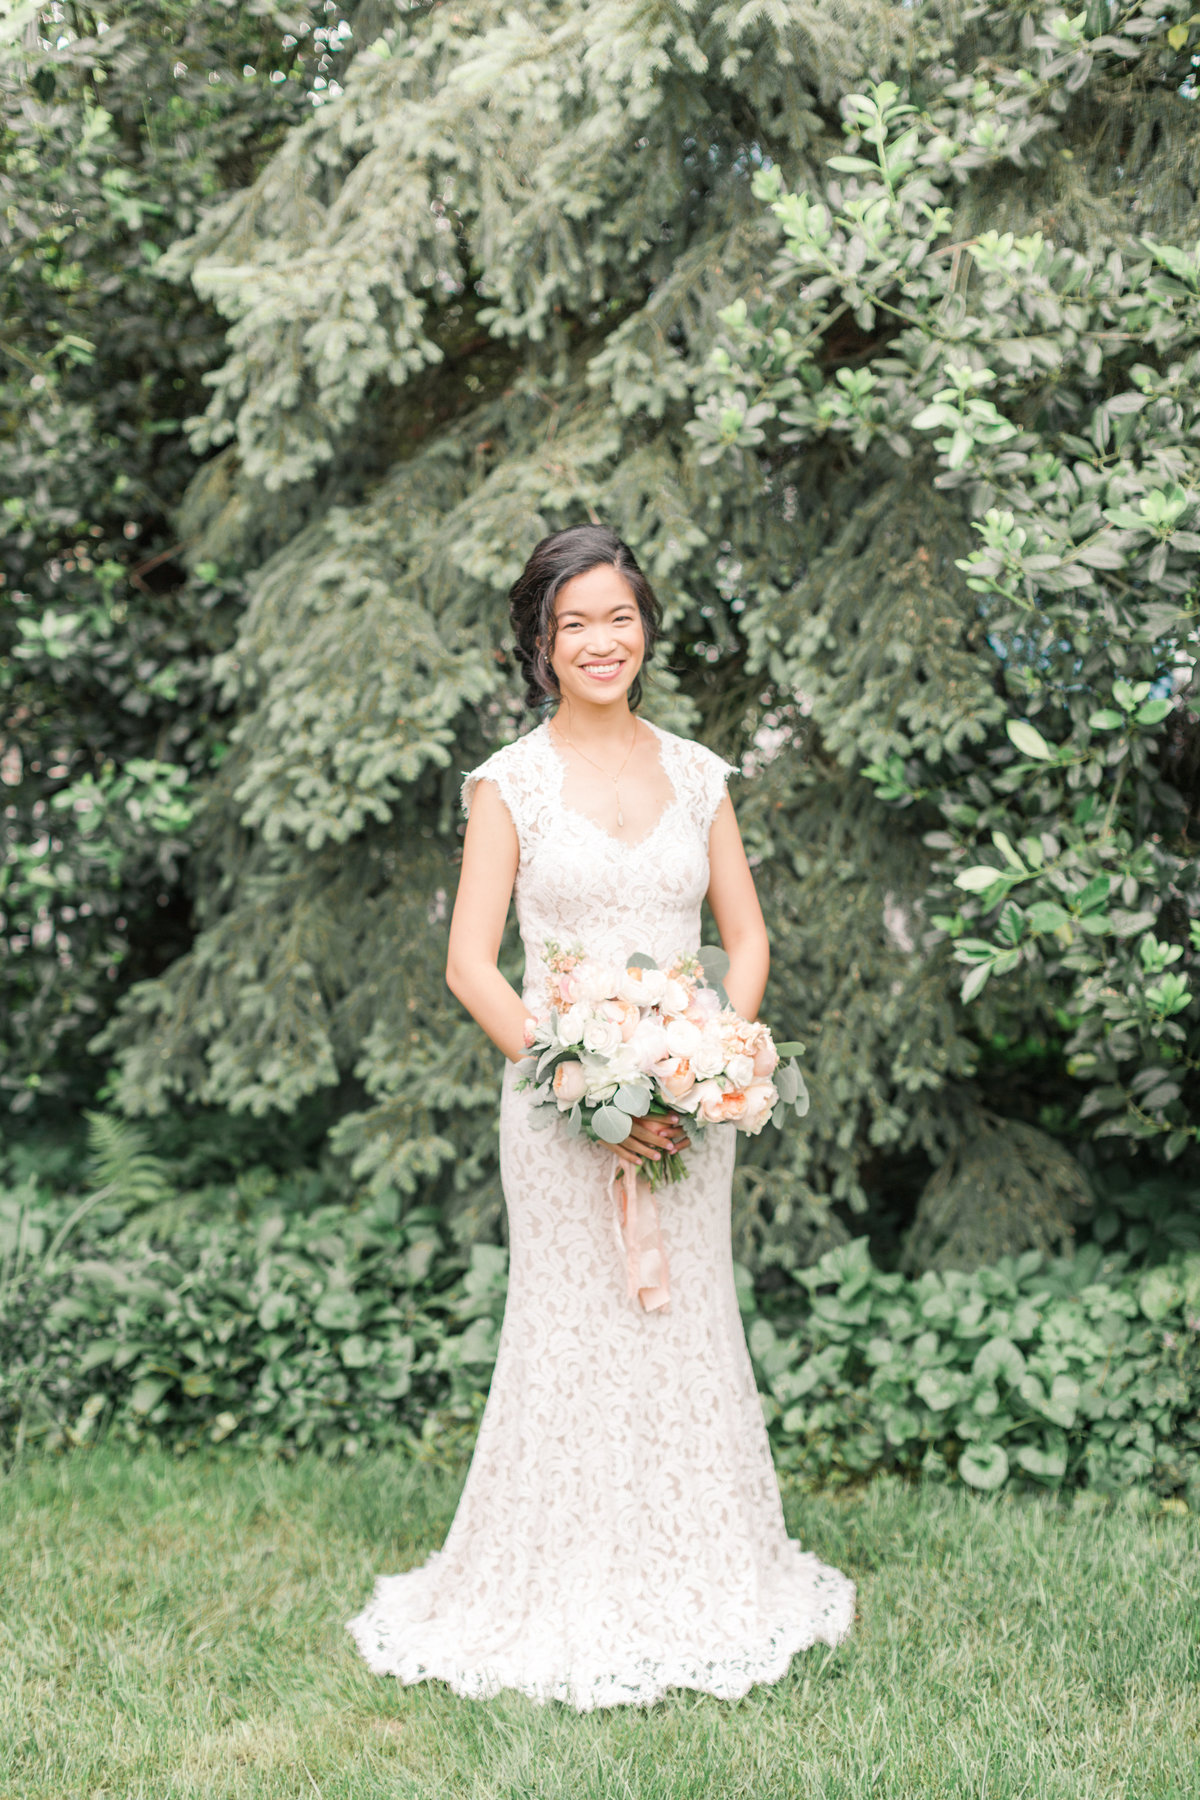 Leesburg-Wedding-Photos_Thomas-Birkby-House-Wedding_Jessica-Green-Photography-68